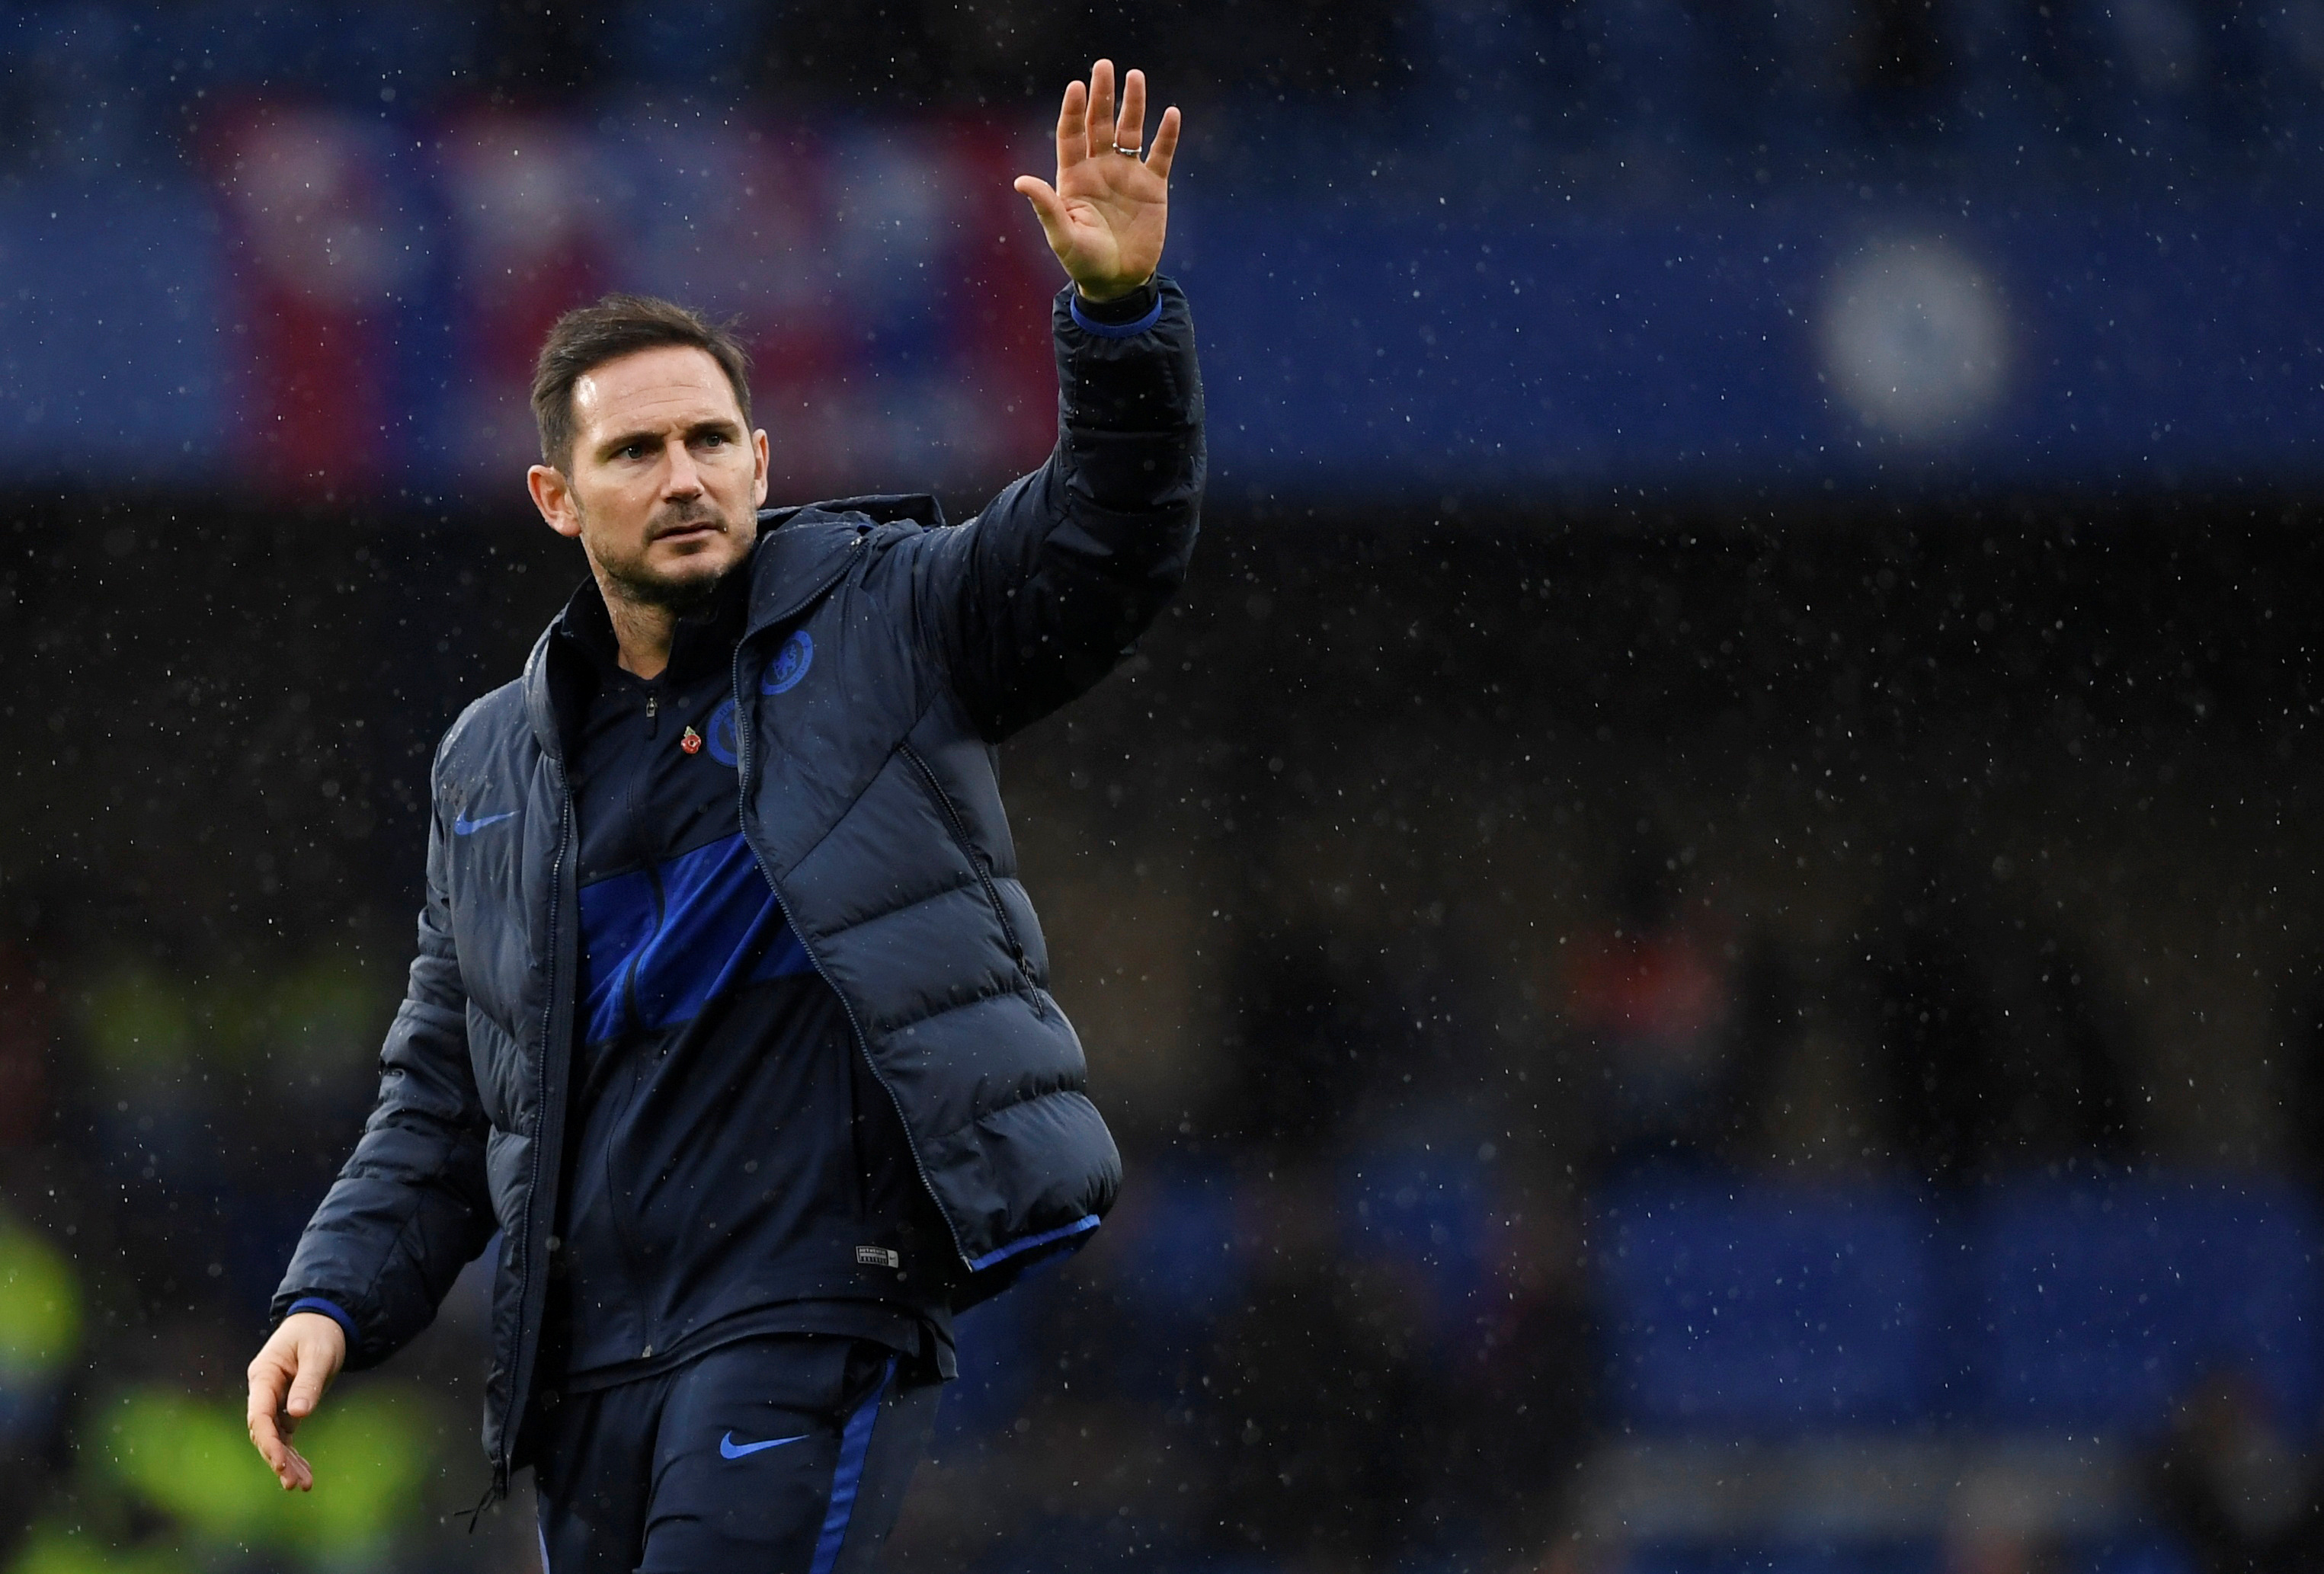 Chelsea's Frank Lampard awarded Premier League Manager of the Month